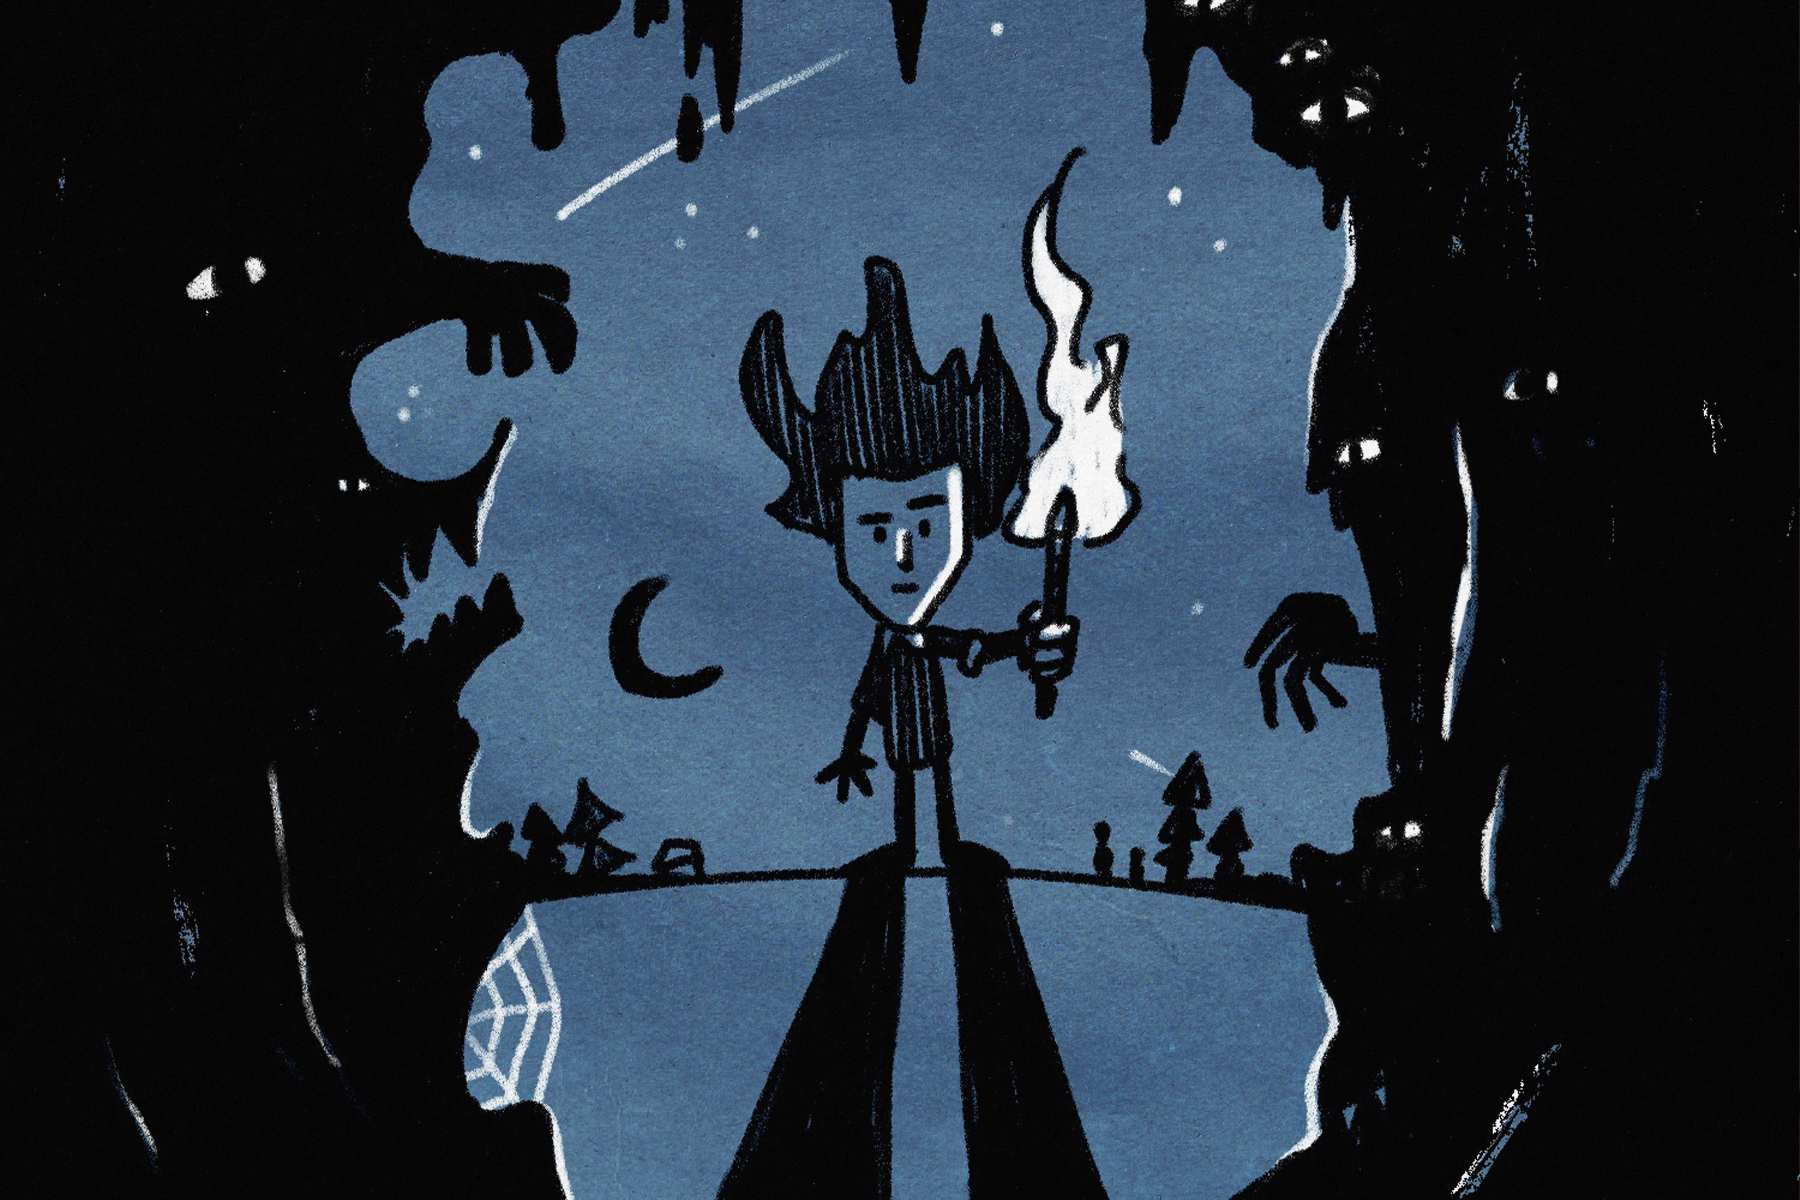 for an article on Don't Starve, an illustration of the main character of the video game